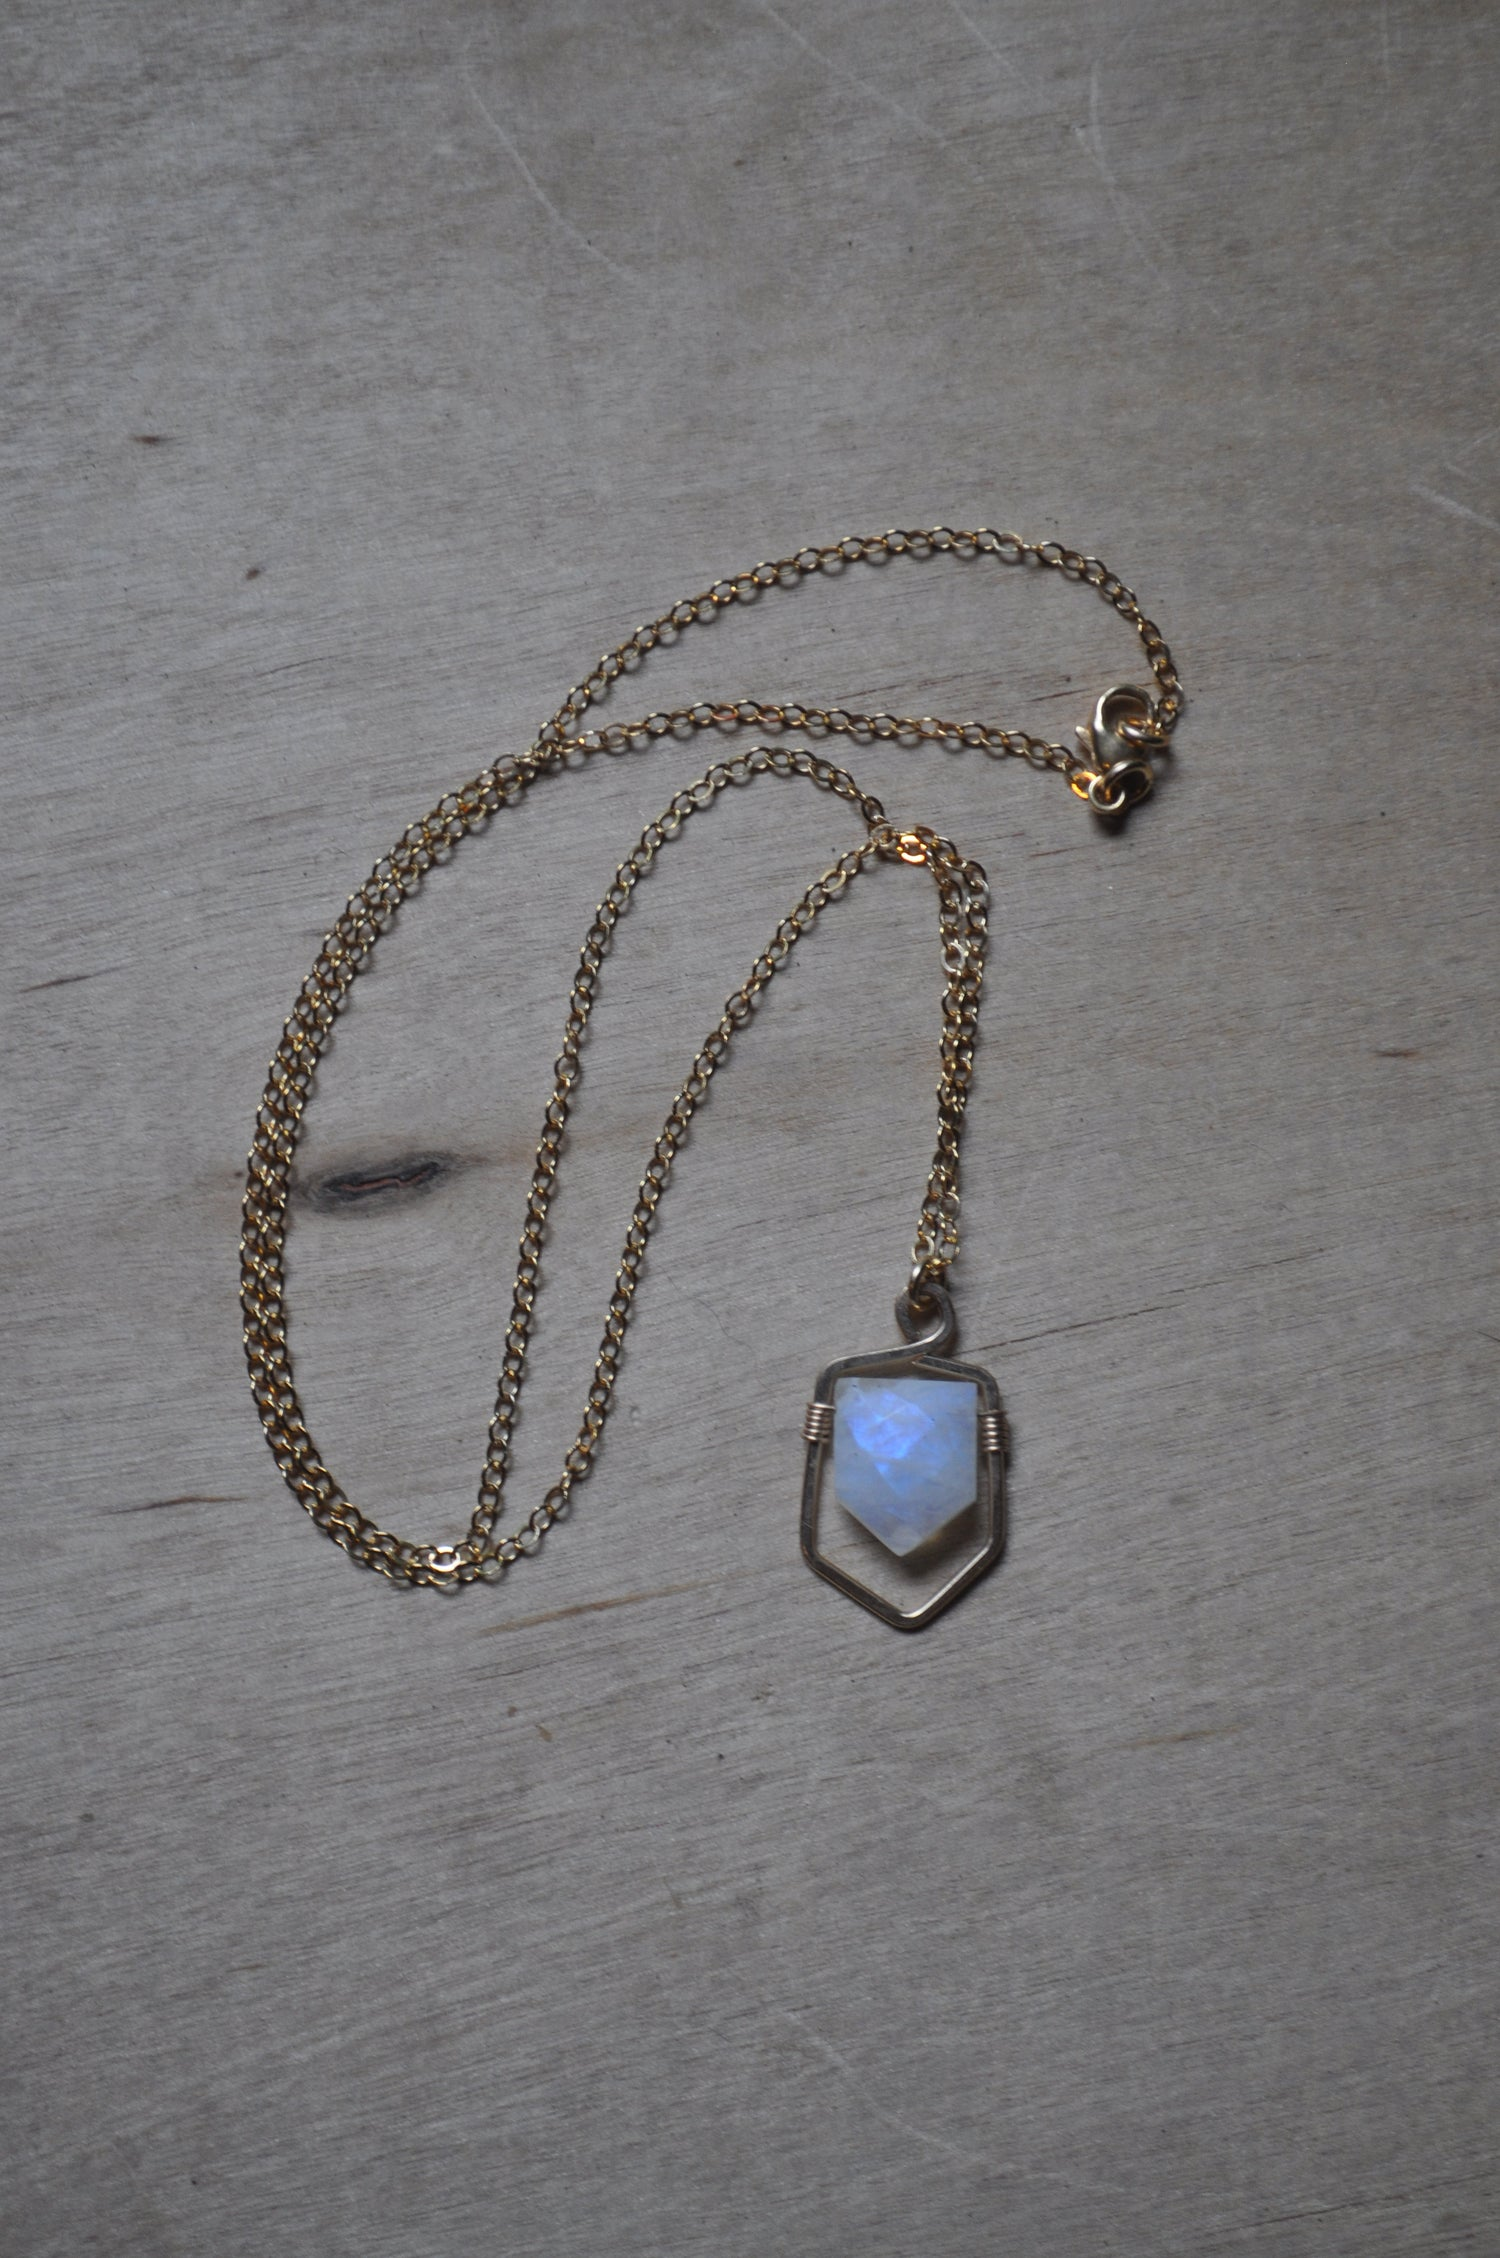 Image of Rainbow Moonstone Shield Necklace in Gold Fill